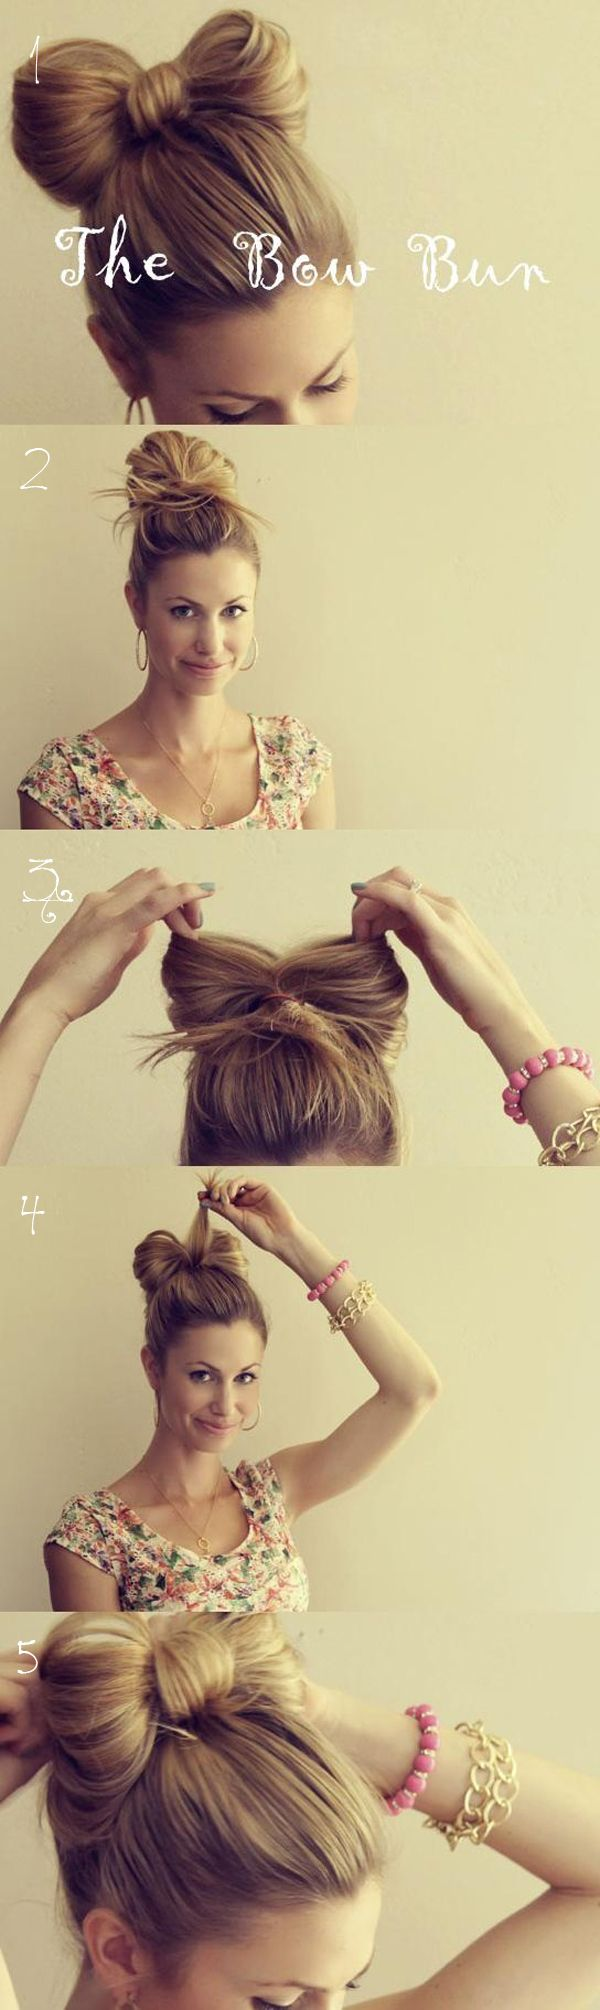 Long Hairstyles for Girls Step By Step Tutorial & Trends with Pictures (17)